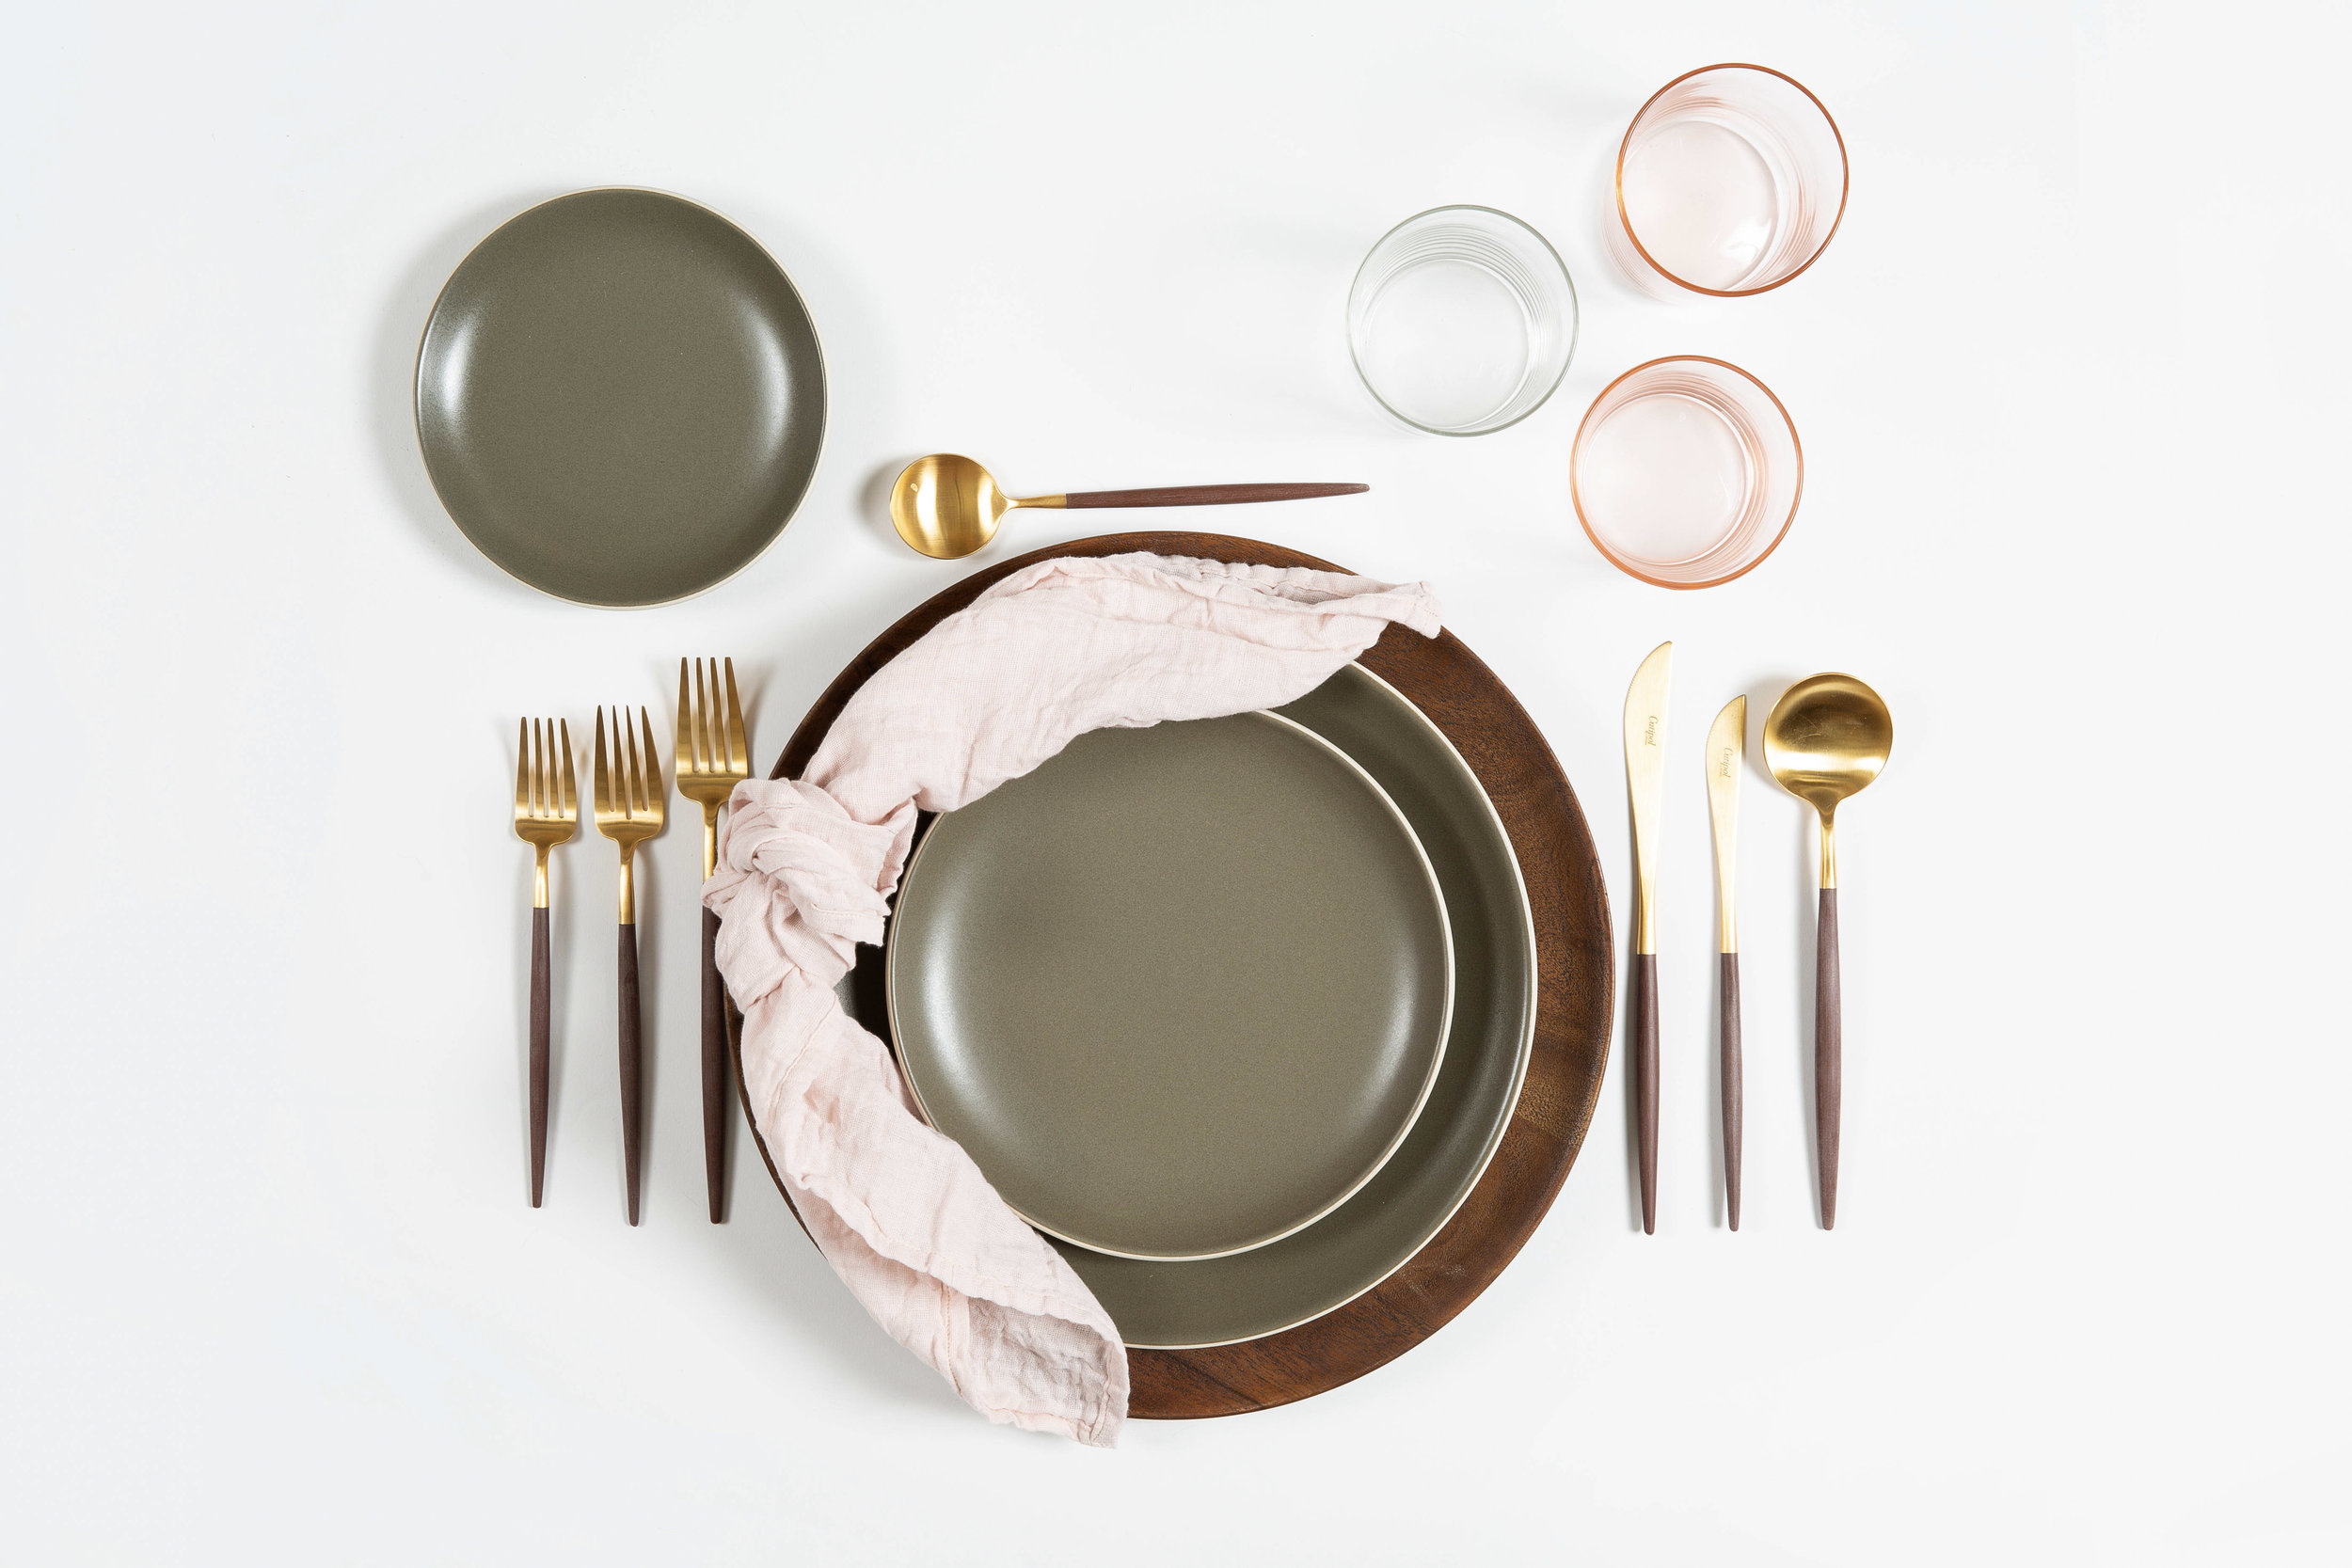 xowyo and co. - Luxury tabletop rentals